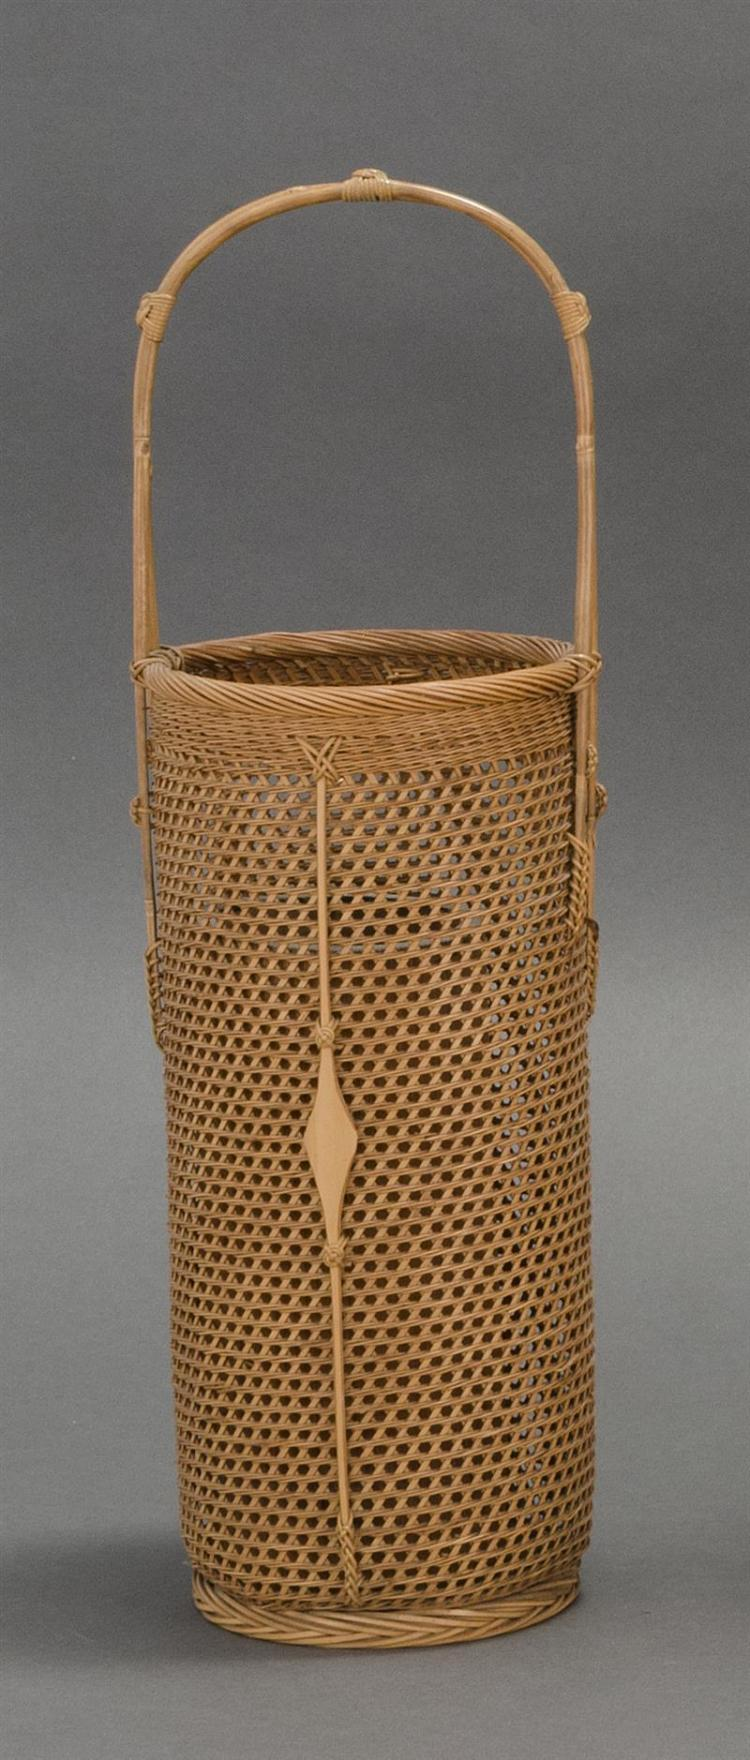 SPLINT BAMBOO IKEBANA BASKET In cylinder form with bamboo handle and embellishments. Height 16